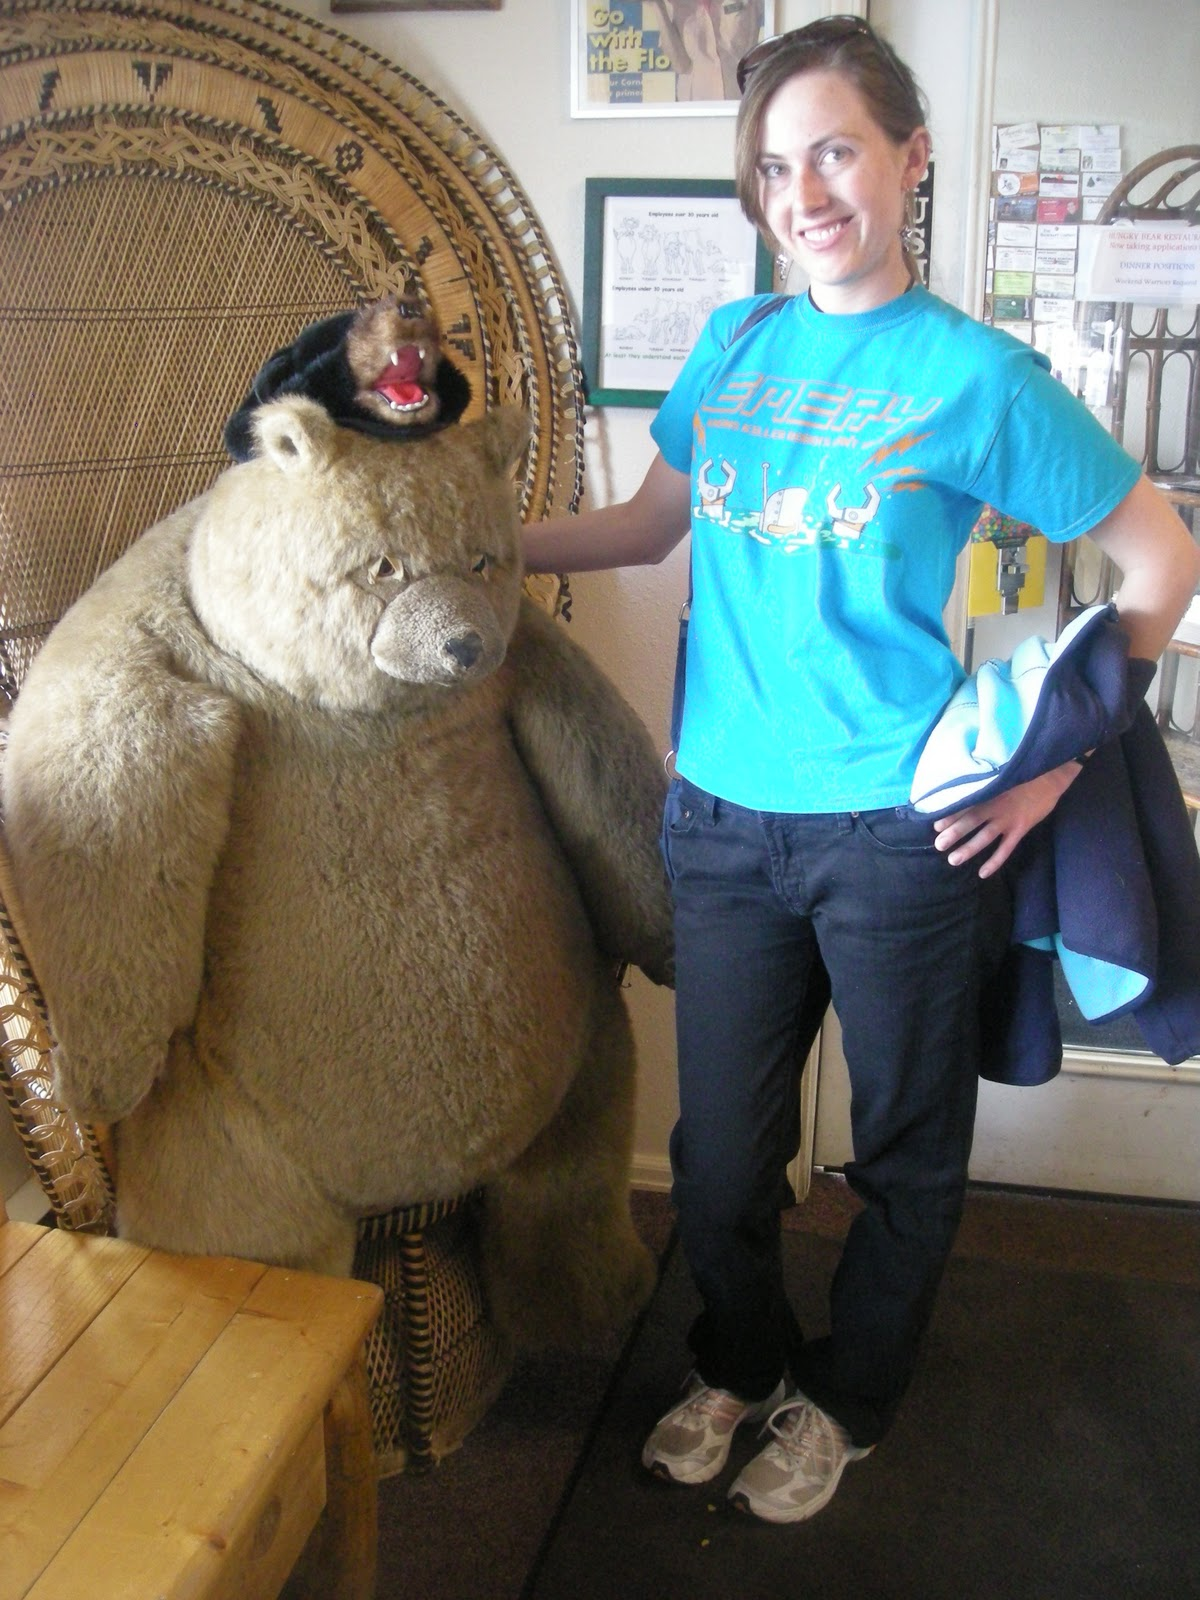 Me and Topanga with the giant bear, the mascot for our favorite restaurant ...